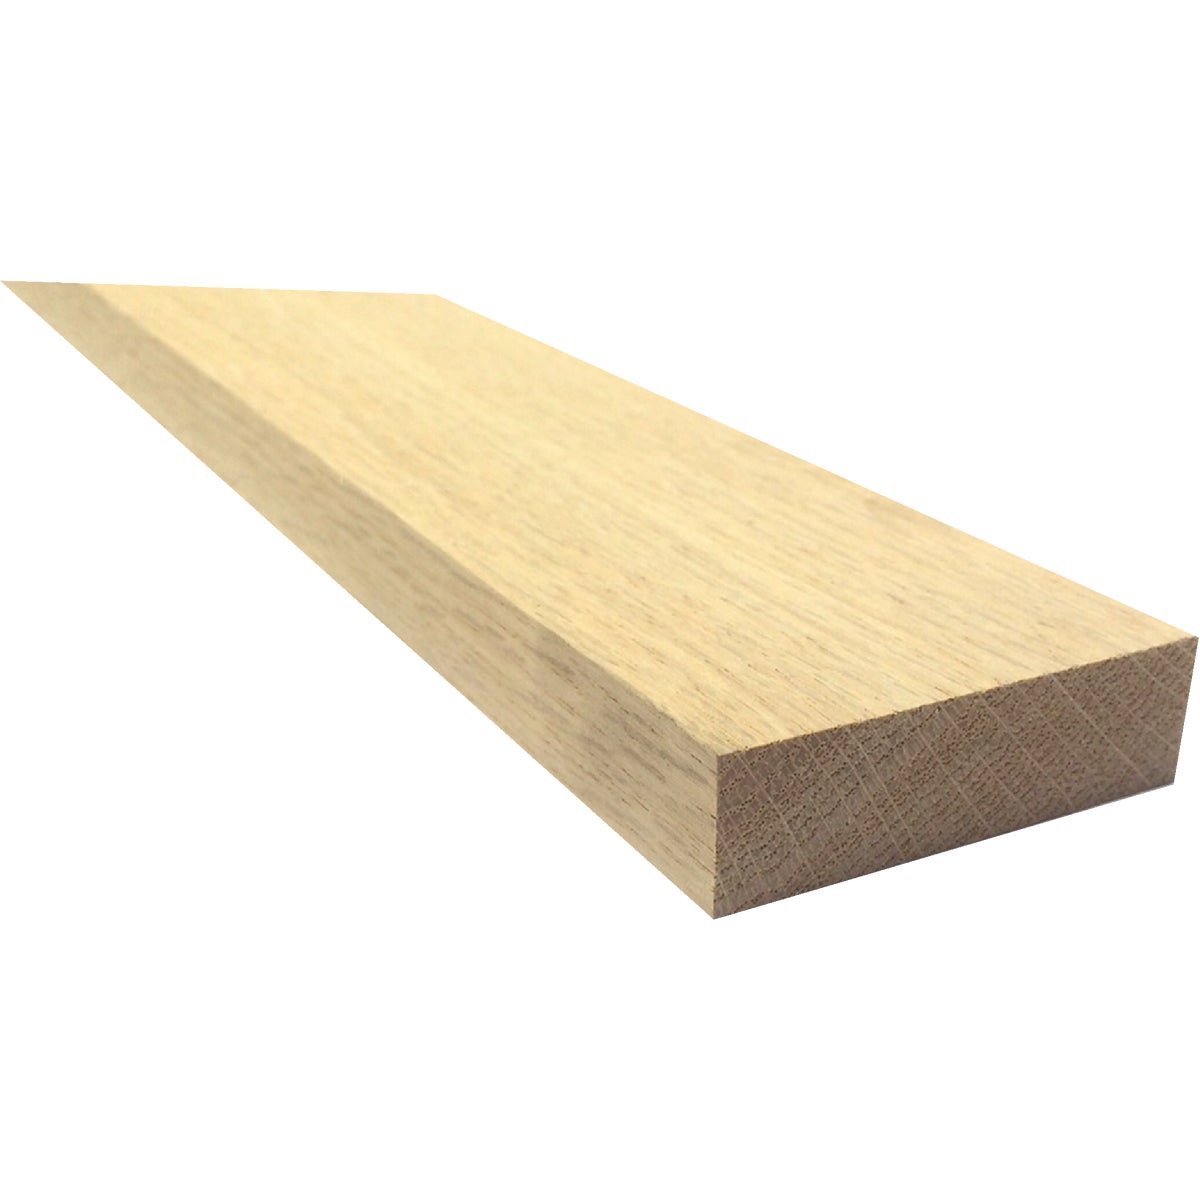 "1X3""X4' OAK BOARD - PB19529 by Waddell Mfg Company"